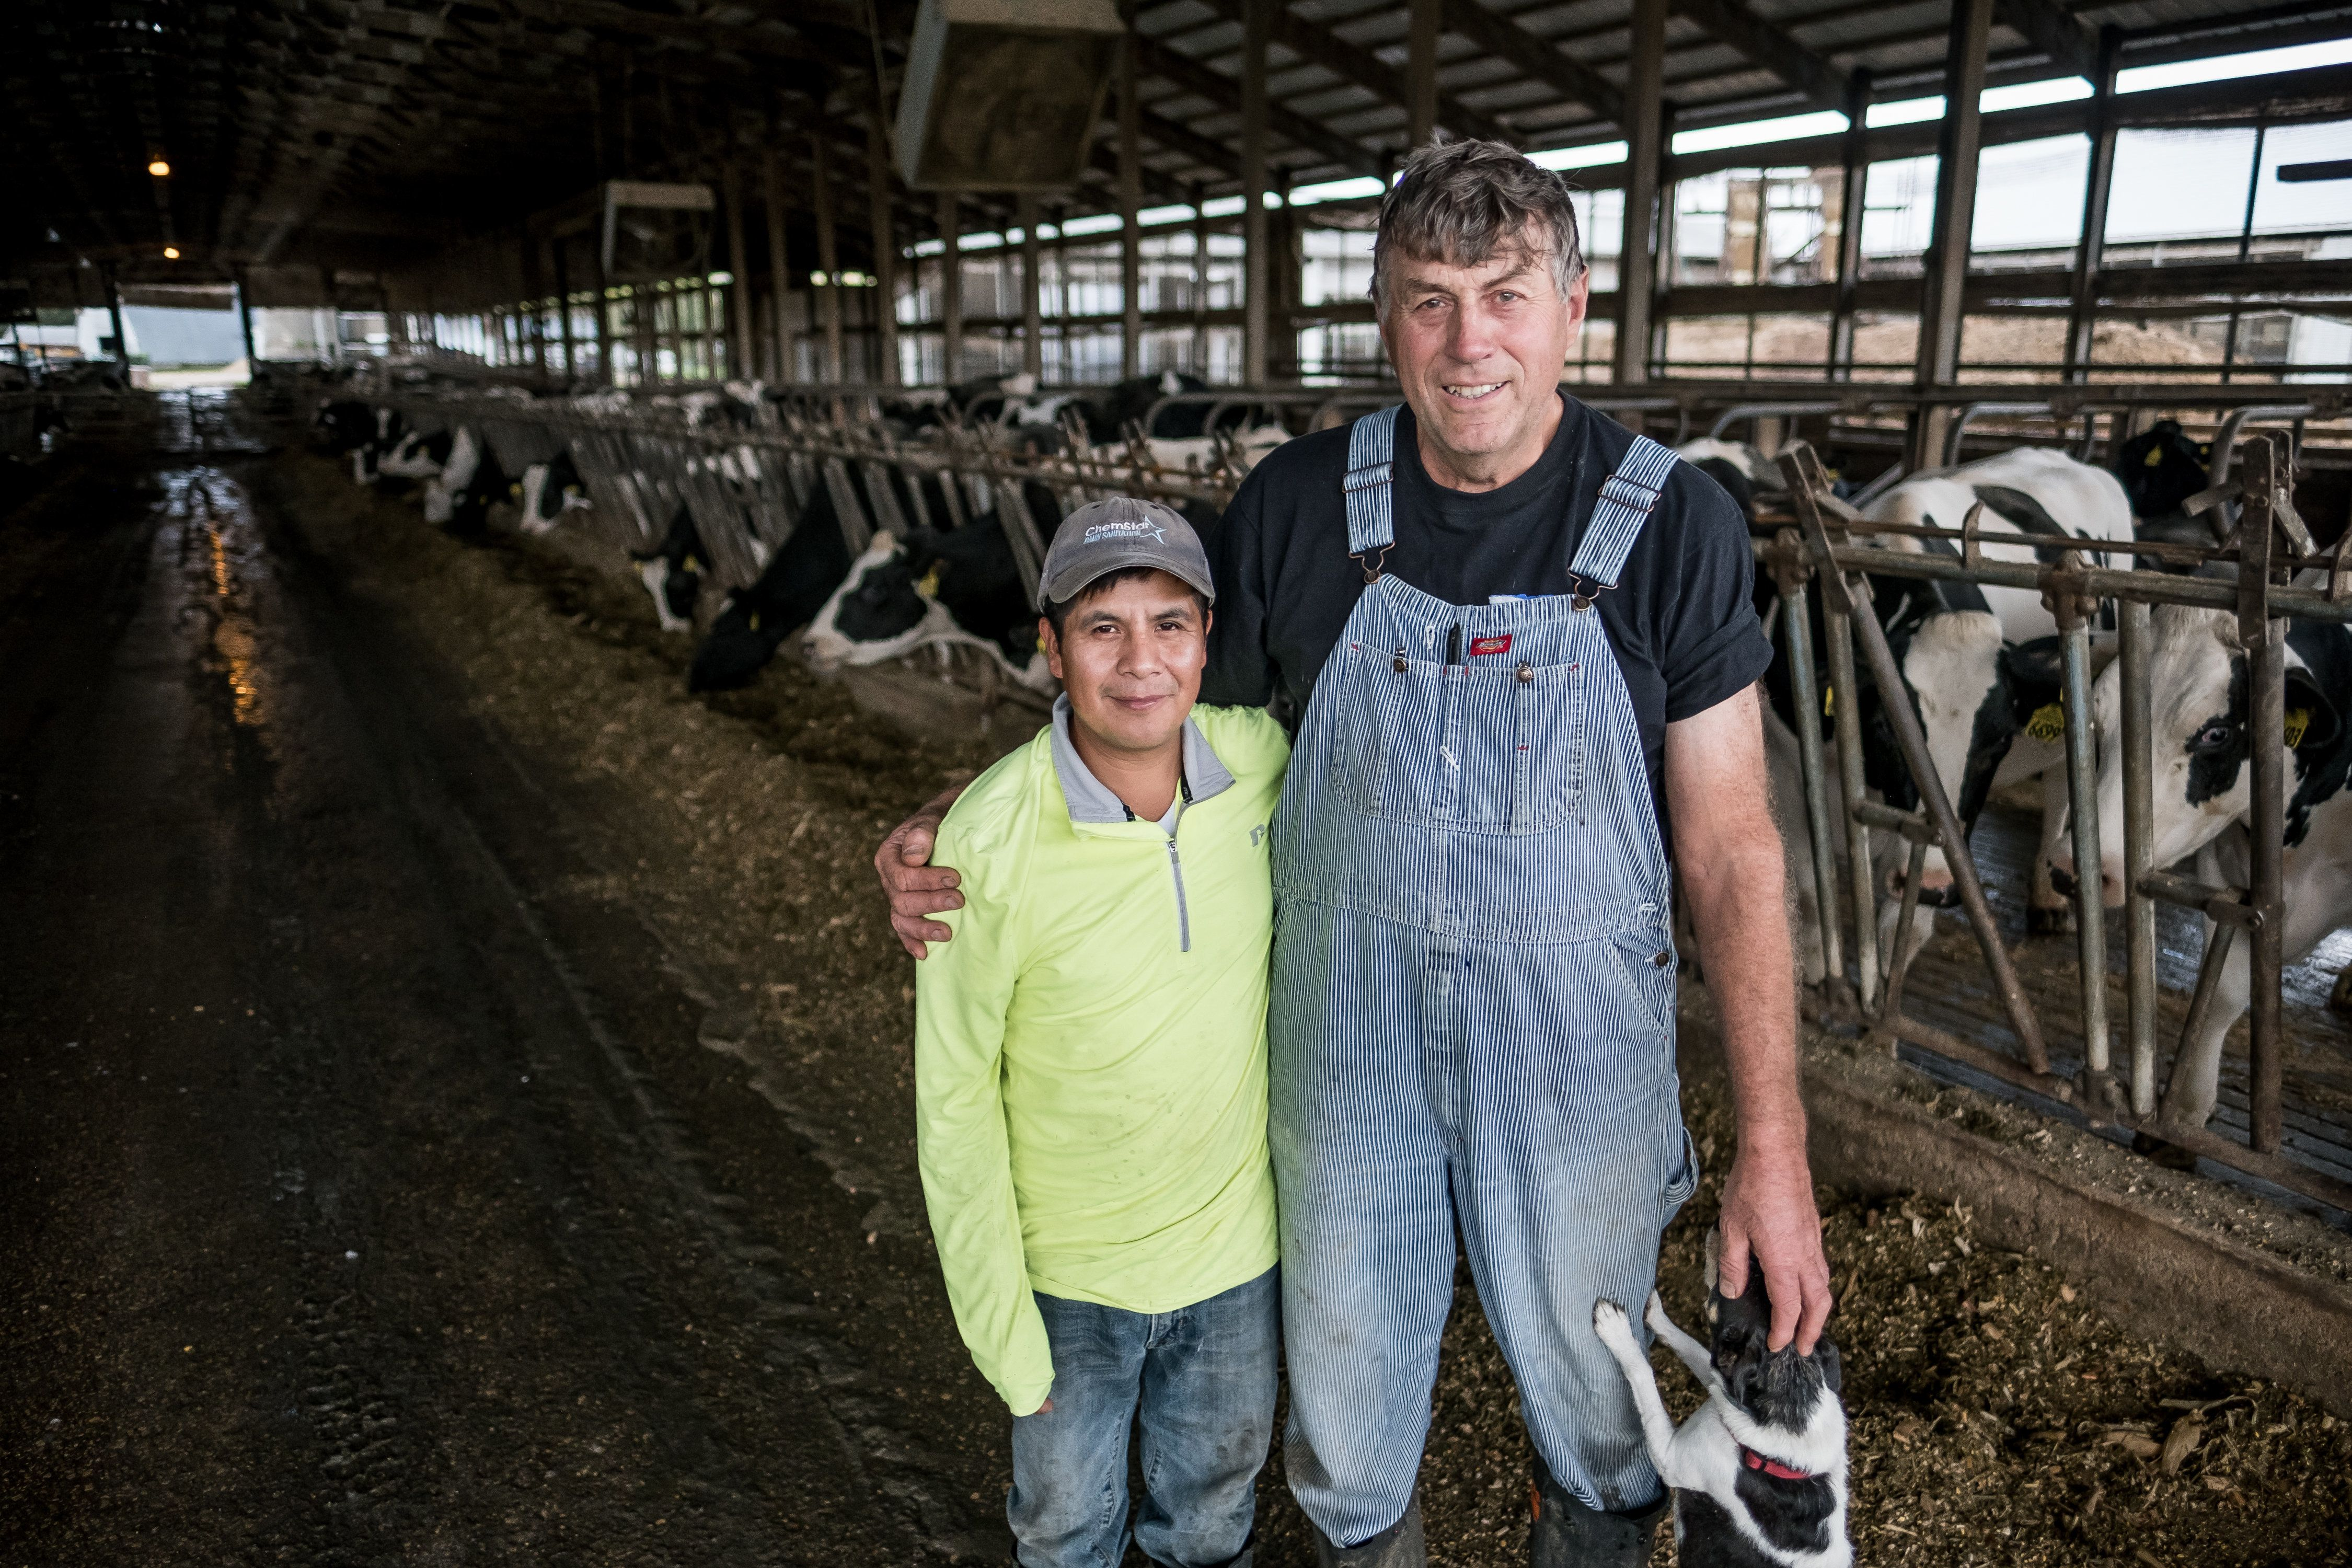 (L-R) Roberto Tecpile, a farm worker from Veracruz, Mexico, and John Rosenow, owner of Rosenholm dairy farm, pose for a portrait at the farm in Cochrane, WI on October 10, 2018. Tecpile has been working for Rosenow's farm for the last 4 years, with hopes of returning to his family in Mexico in a year or two. Rosenow's farm participates in the Puentes/Bridges program, a non-profit organization that arranges annual trips to Mexico to help foster better understanding and relationships between farmers and their workers.